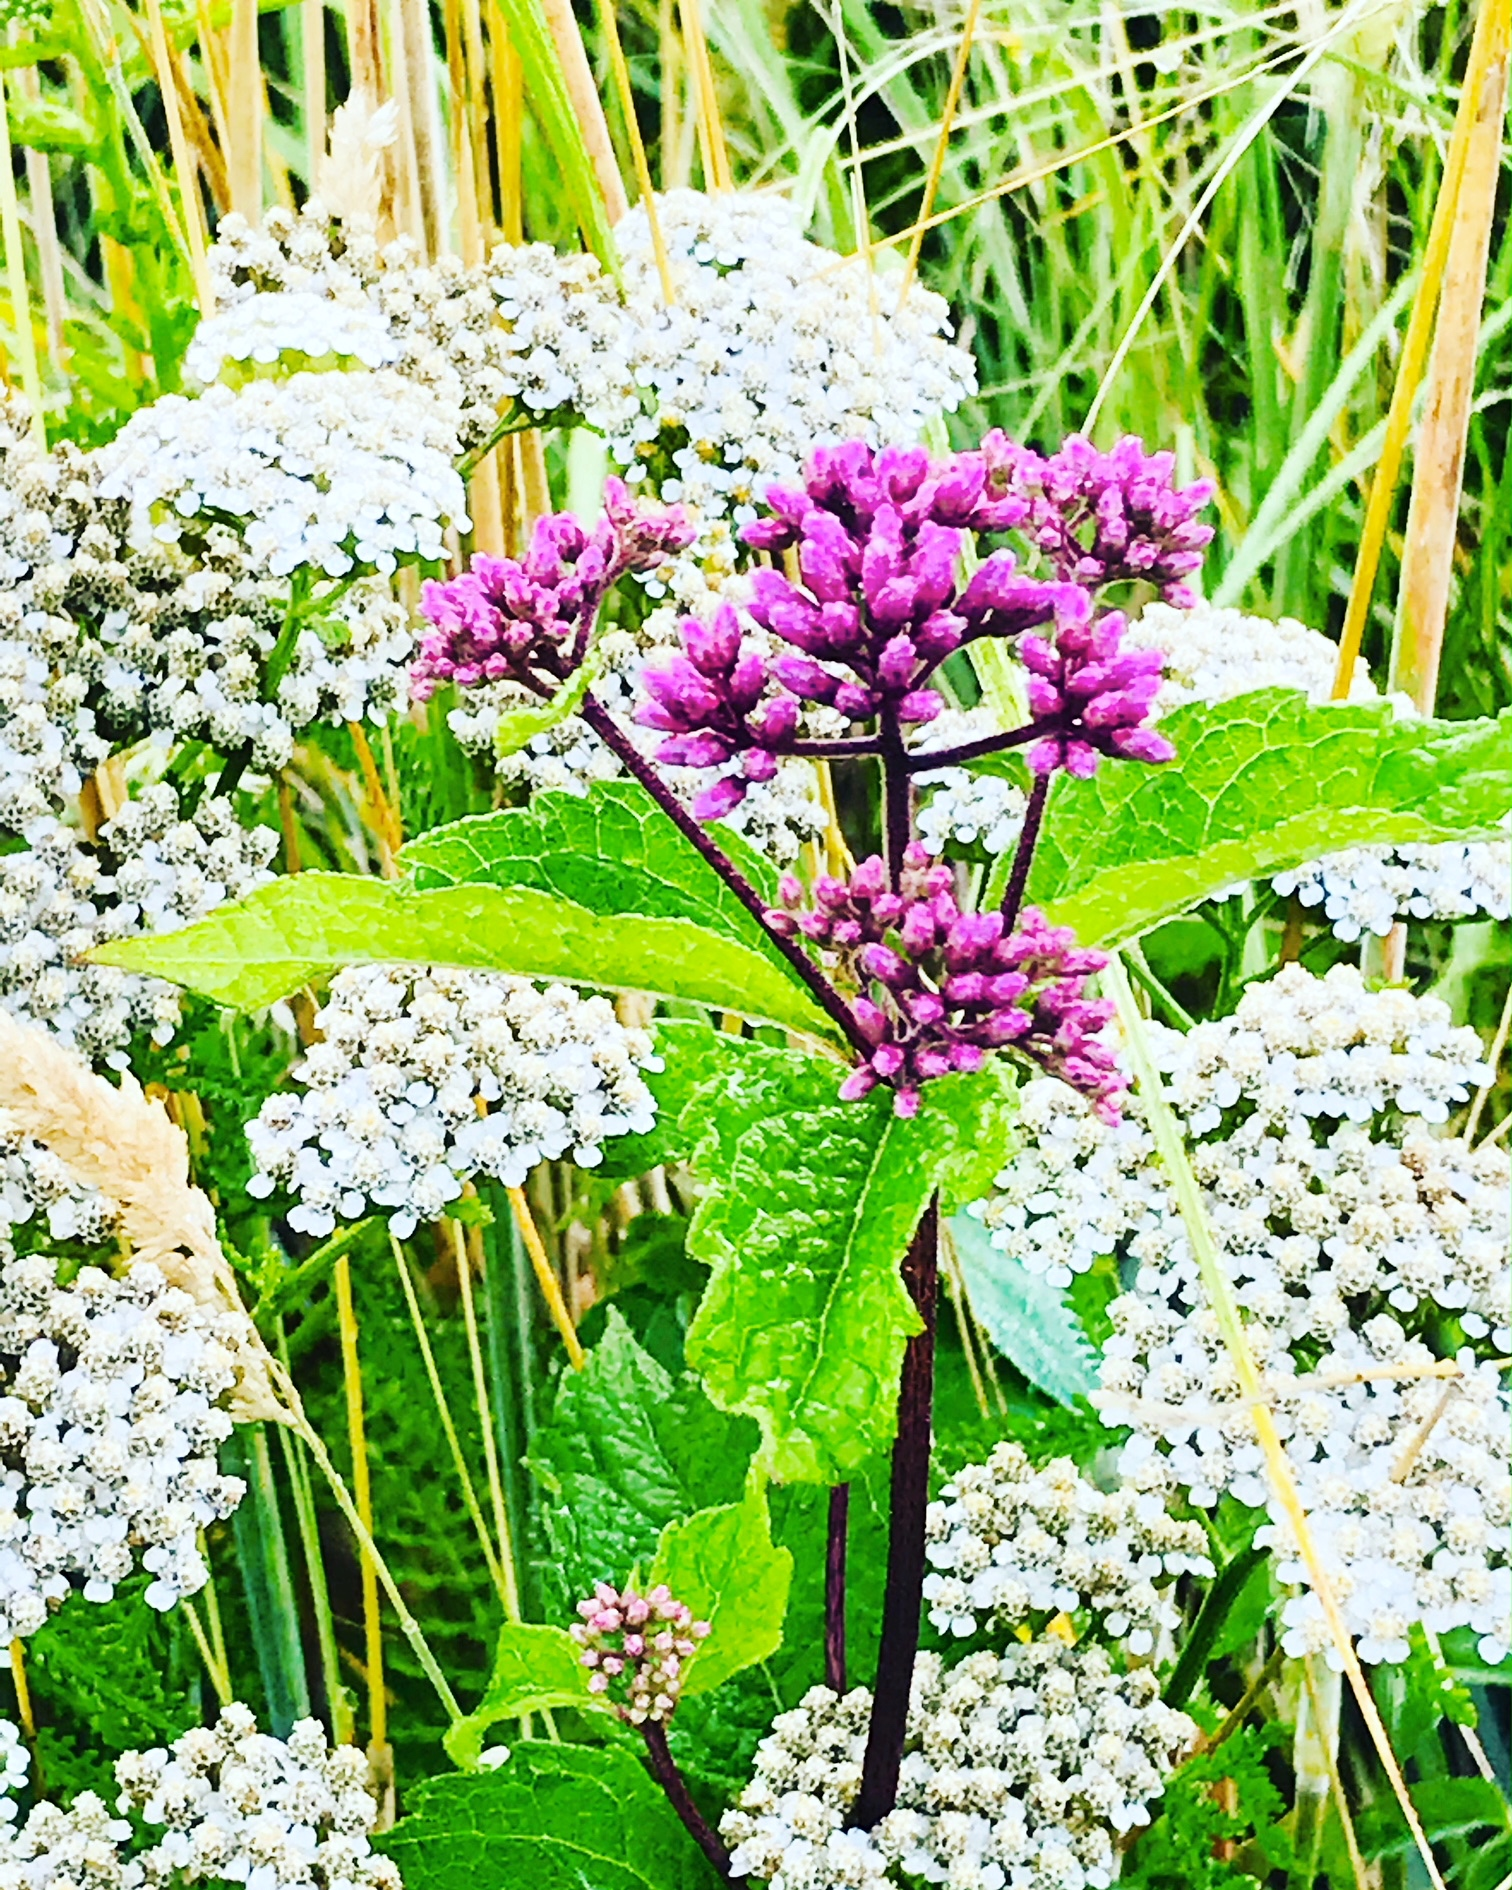 Milkweed in the Yarrow by the Brook